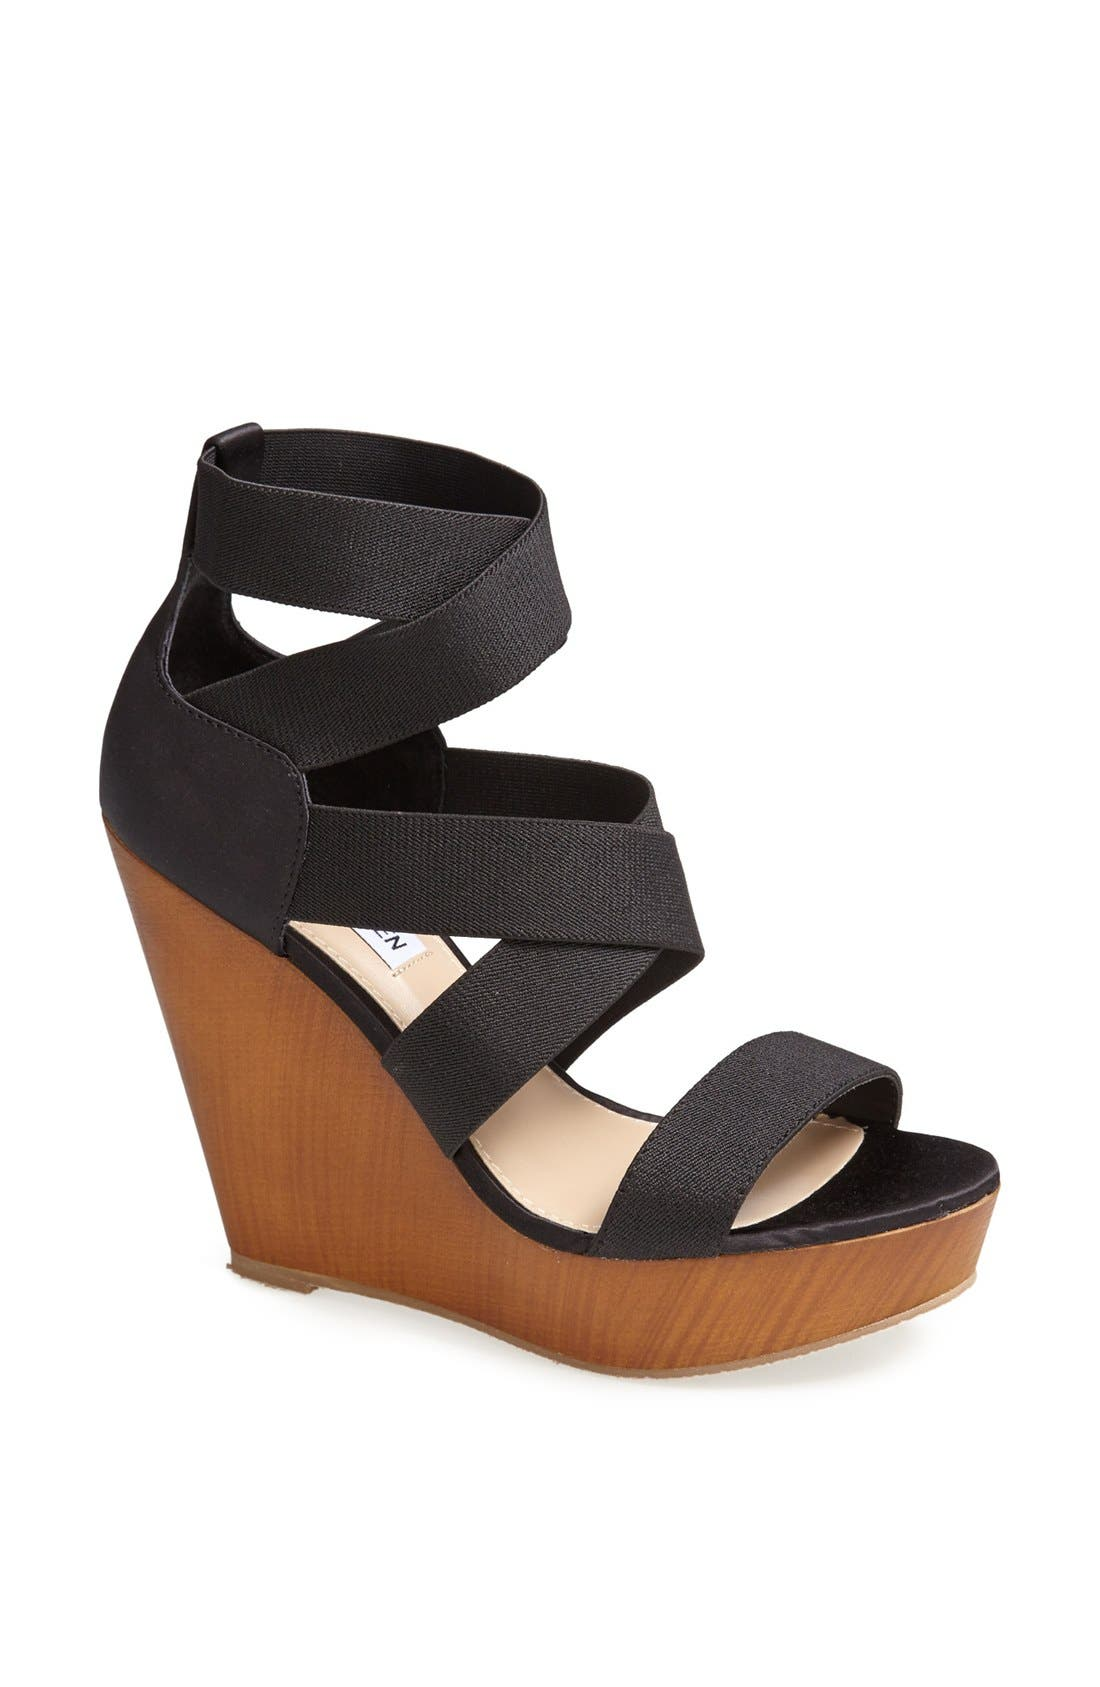 'Val' Wedge Sandal, Main, color, 001